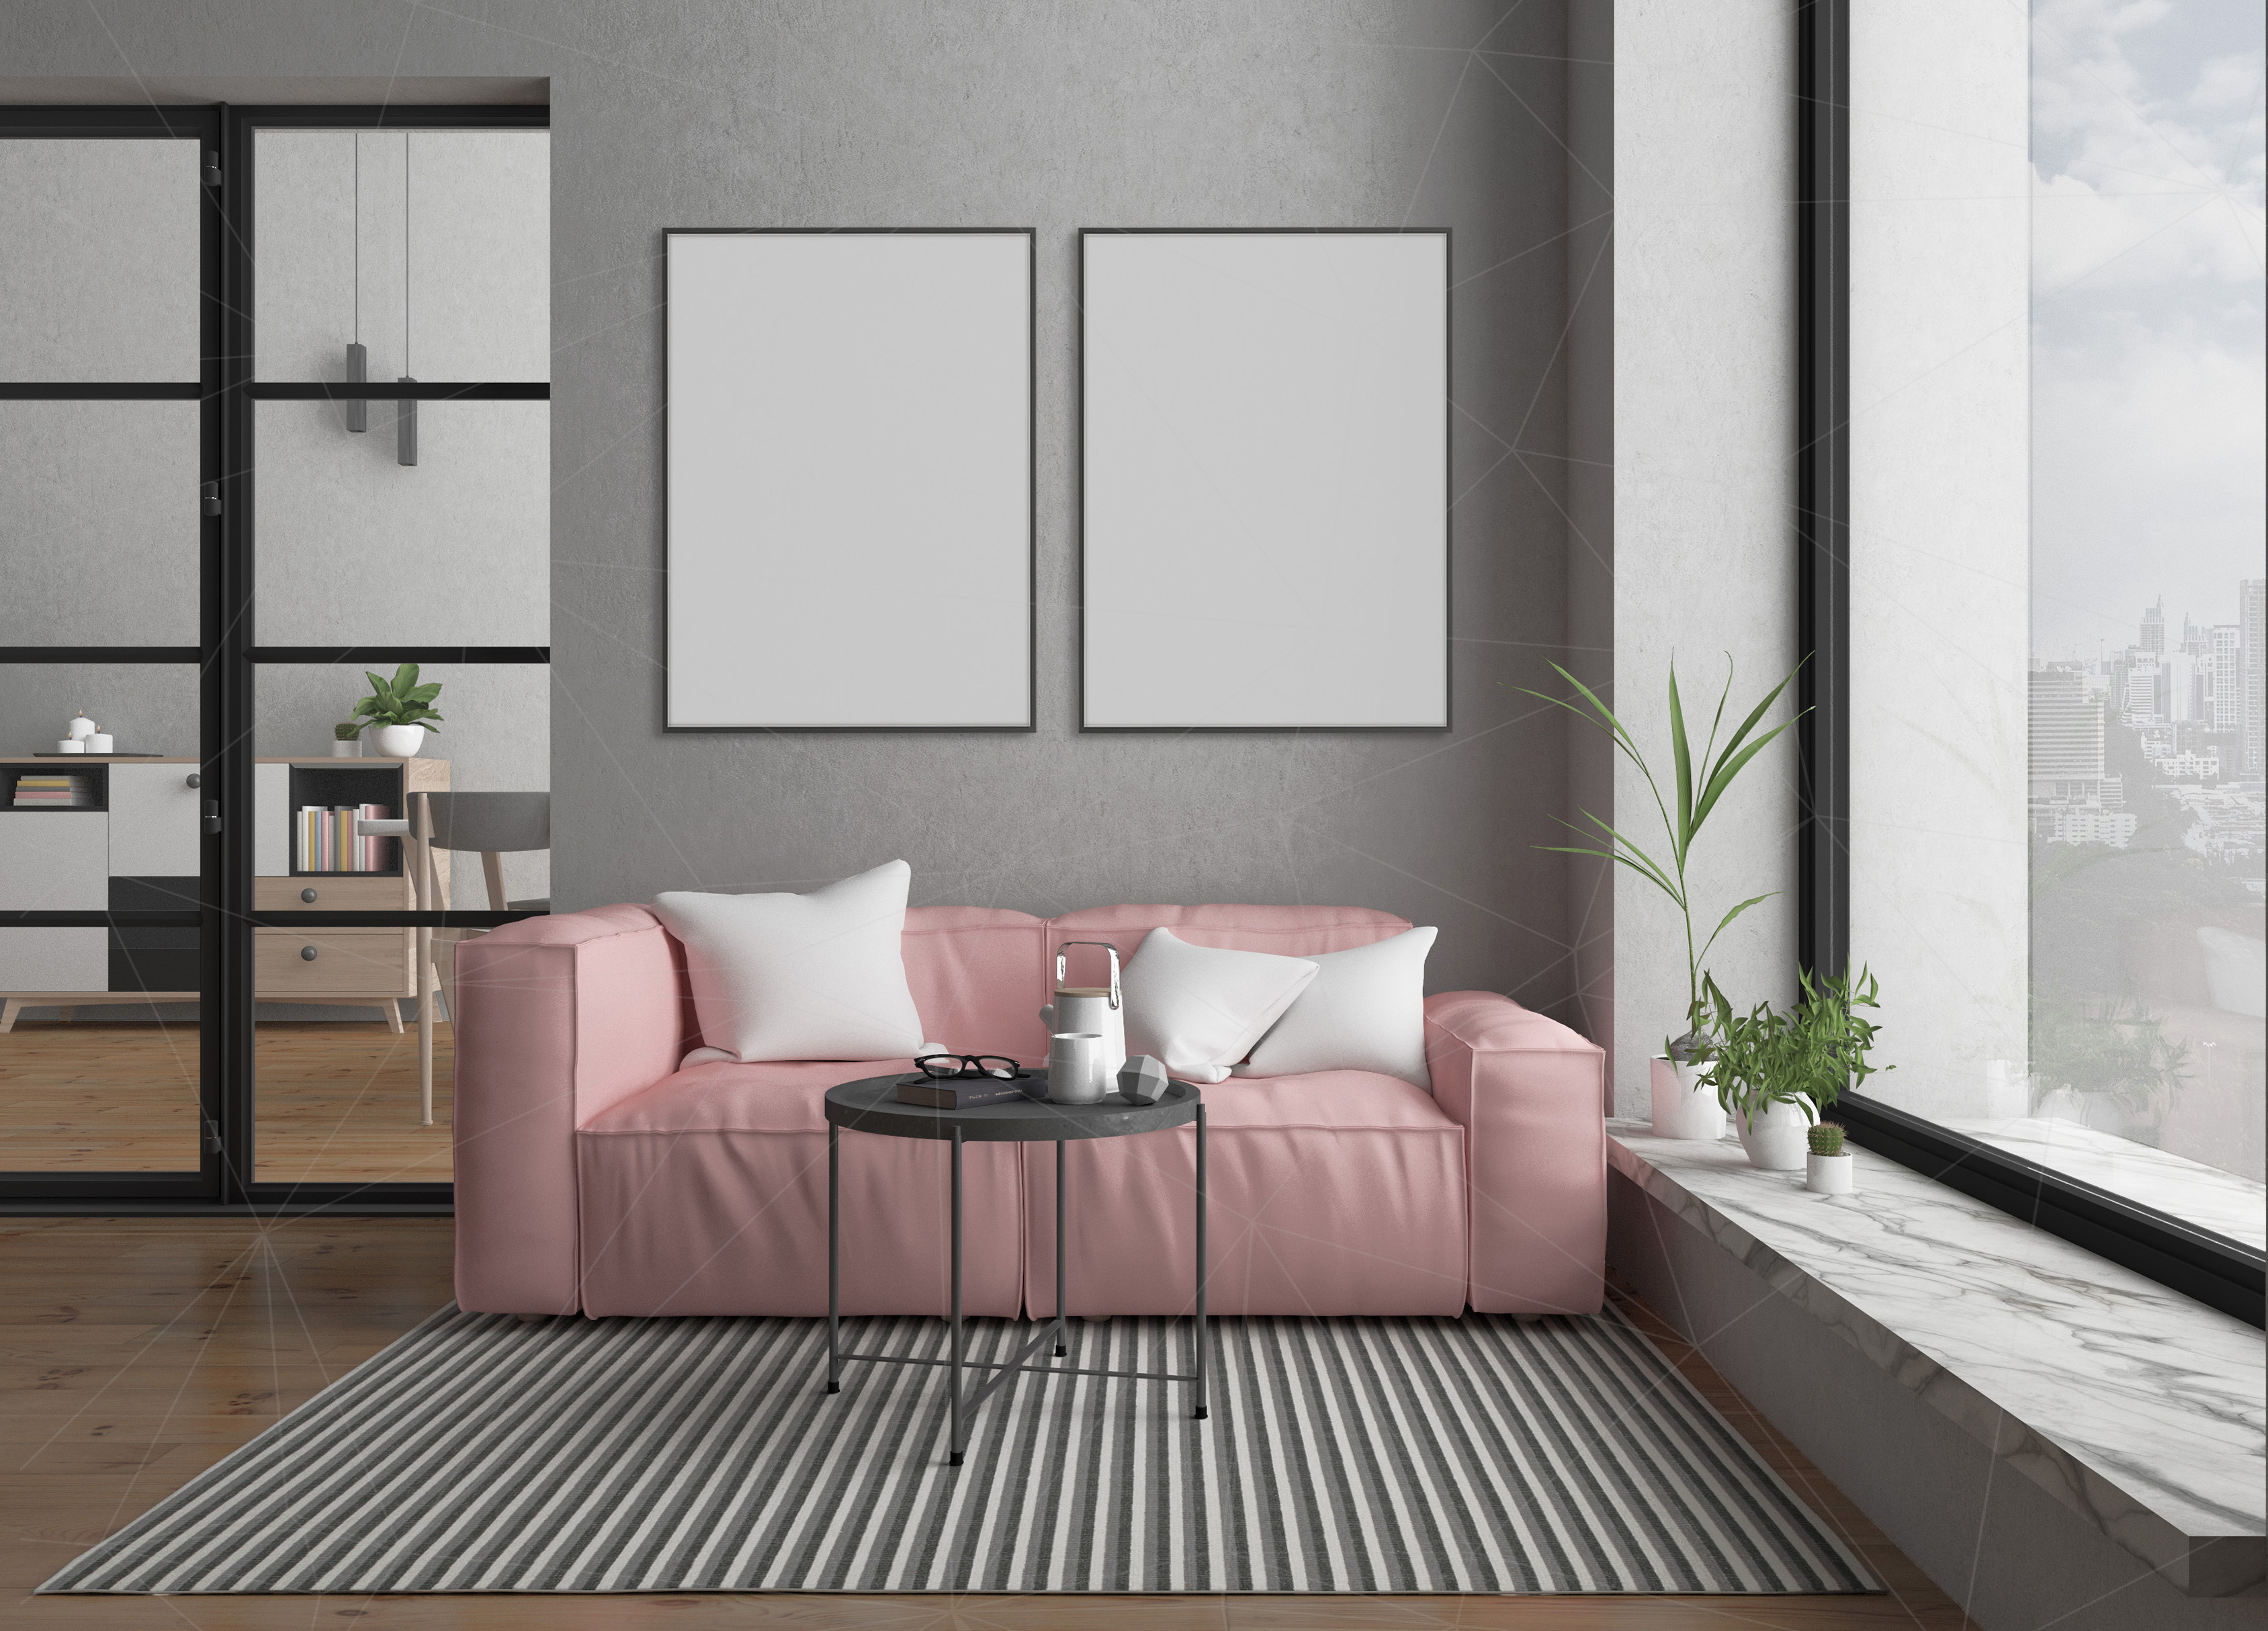 Interior mockup bundle - blank wall mock up example image 3